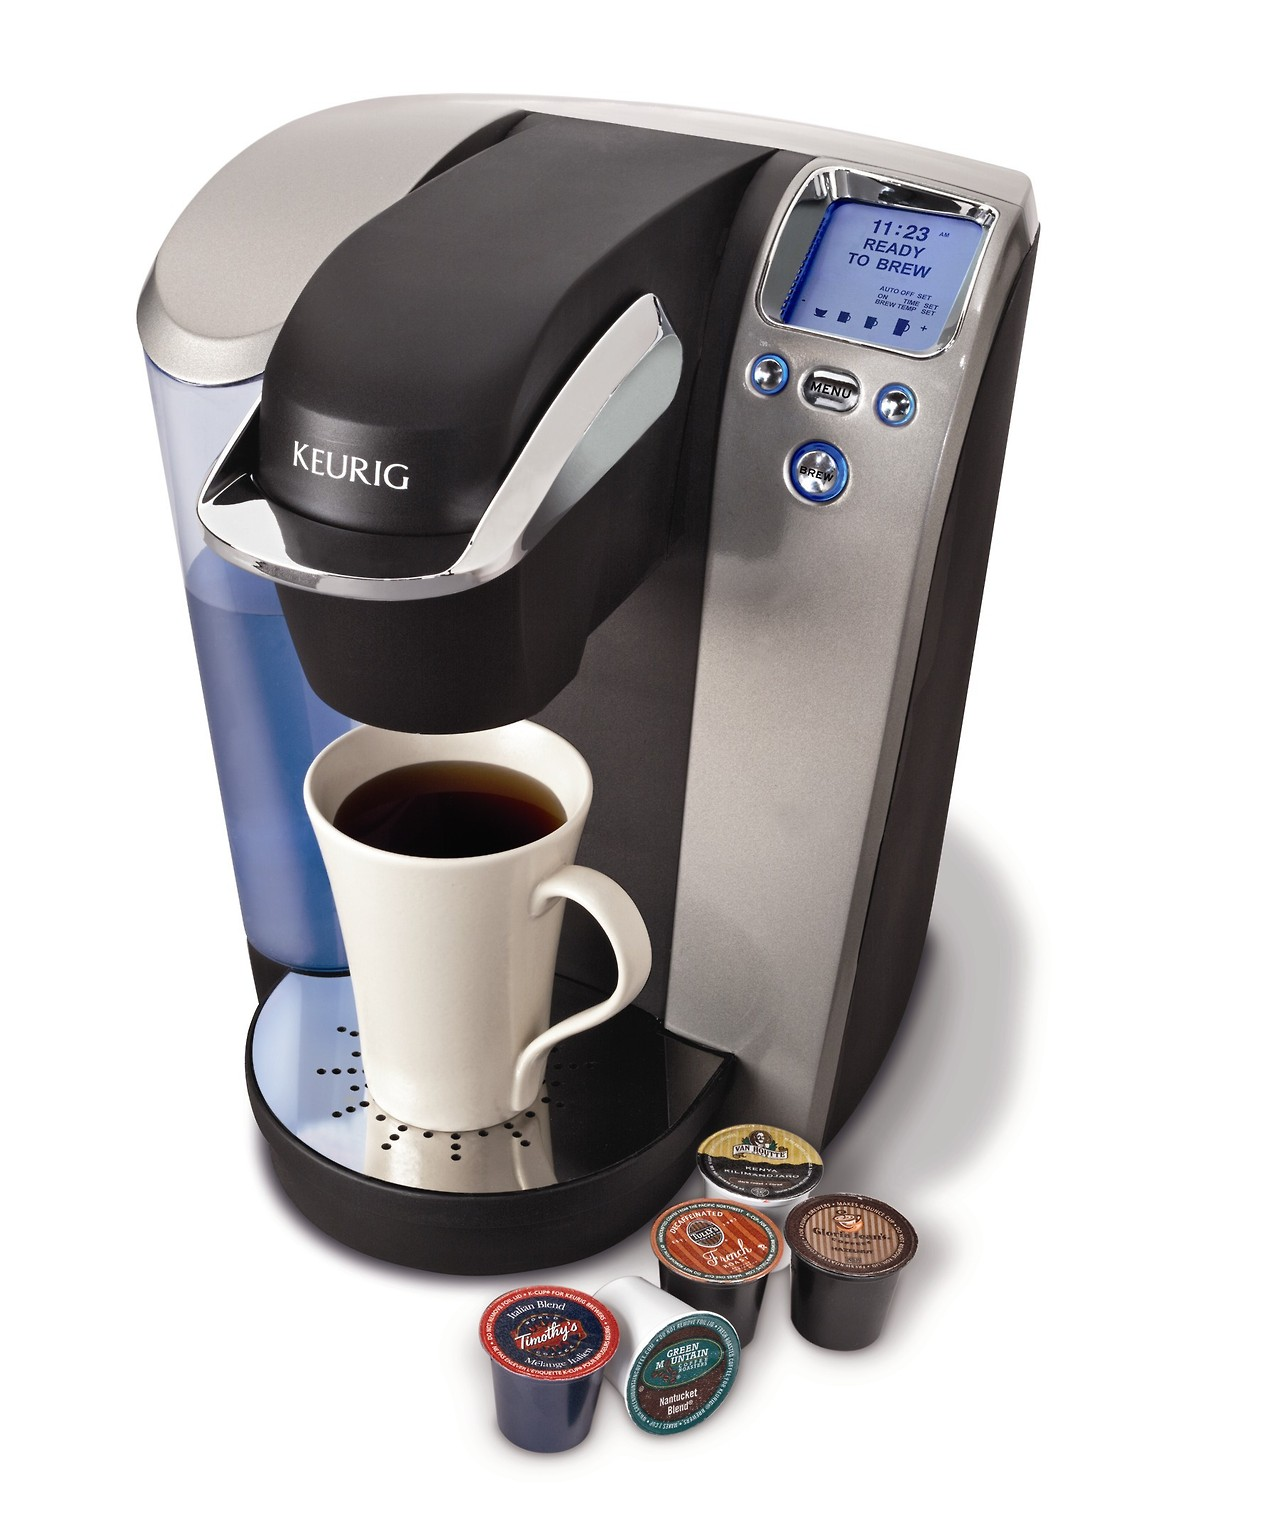 "wilwheaton: maxistentialist: Techdirt: In order to protect their dominant market share, Keurig makers Green Mountain Coffee Roasters has been on a bit of an aggressive tear of late. As with computer printers, getting the device in the home is simply a gateway to where the real money is: refills. But Keurig has faced the ""problem"" in recent years of third-party pod refills that often retail for 5-25% less than what Keurig charges. As people look to cut costs, there has also been a growing market for reusable pods that generally run anywhere from five to fifteen dollars. Keurig's solution to this problem? In a lawsuit (pdf) filed against Keurig by TreeHouse Foods, they claim Keurig has been busy striking exclusionary agreements with suppliers and distributors to lock competing products out of the market. What's more, TreeHouse points out that Keurig is now developing a new version of their coffee maker that will incorporate the java-bean equivalent of DRM — so that only Keurig's own coffee pods can be used in it. Friends don't let friends use pod coffee makers. FRIENDS DON'T LET FRIENDS USE POD COFFEE MAKERS. FRIENDS! DON'T! LET! FRIENDS! USE! POD! COFFEE! MAKERS!"